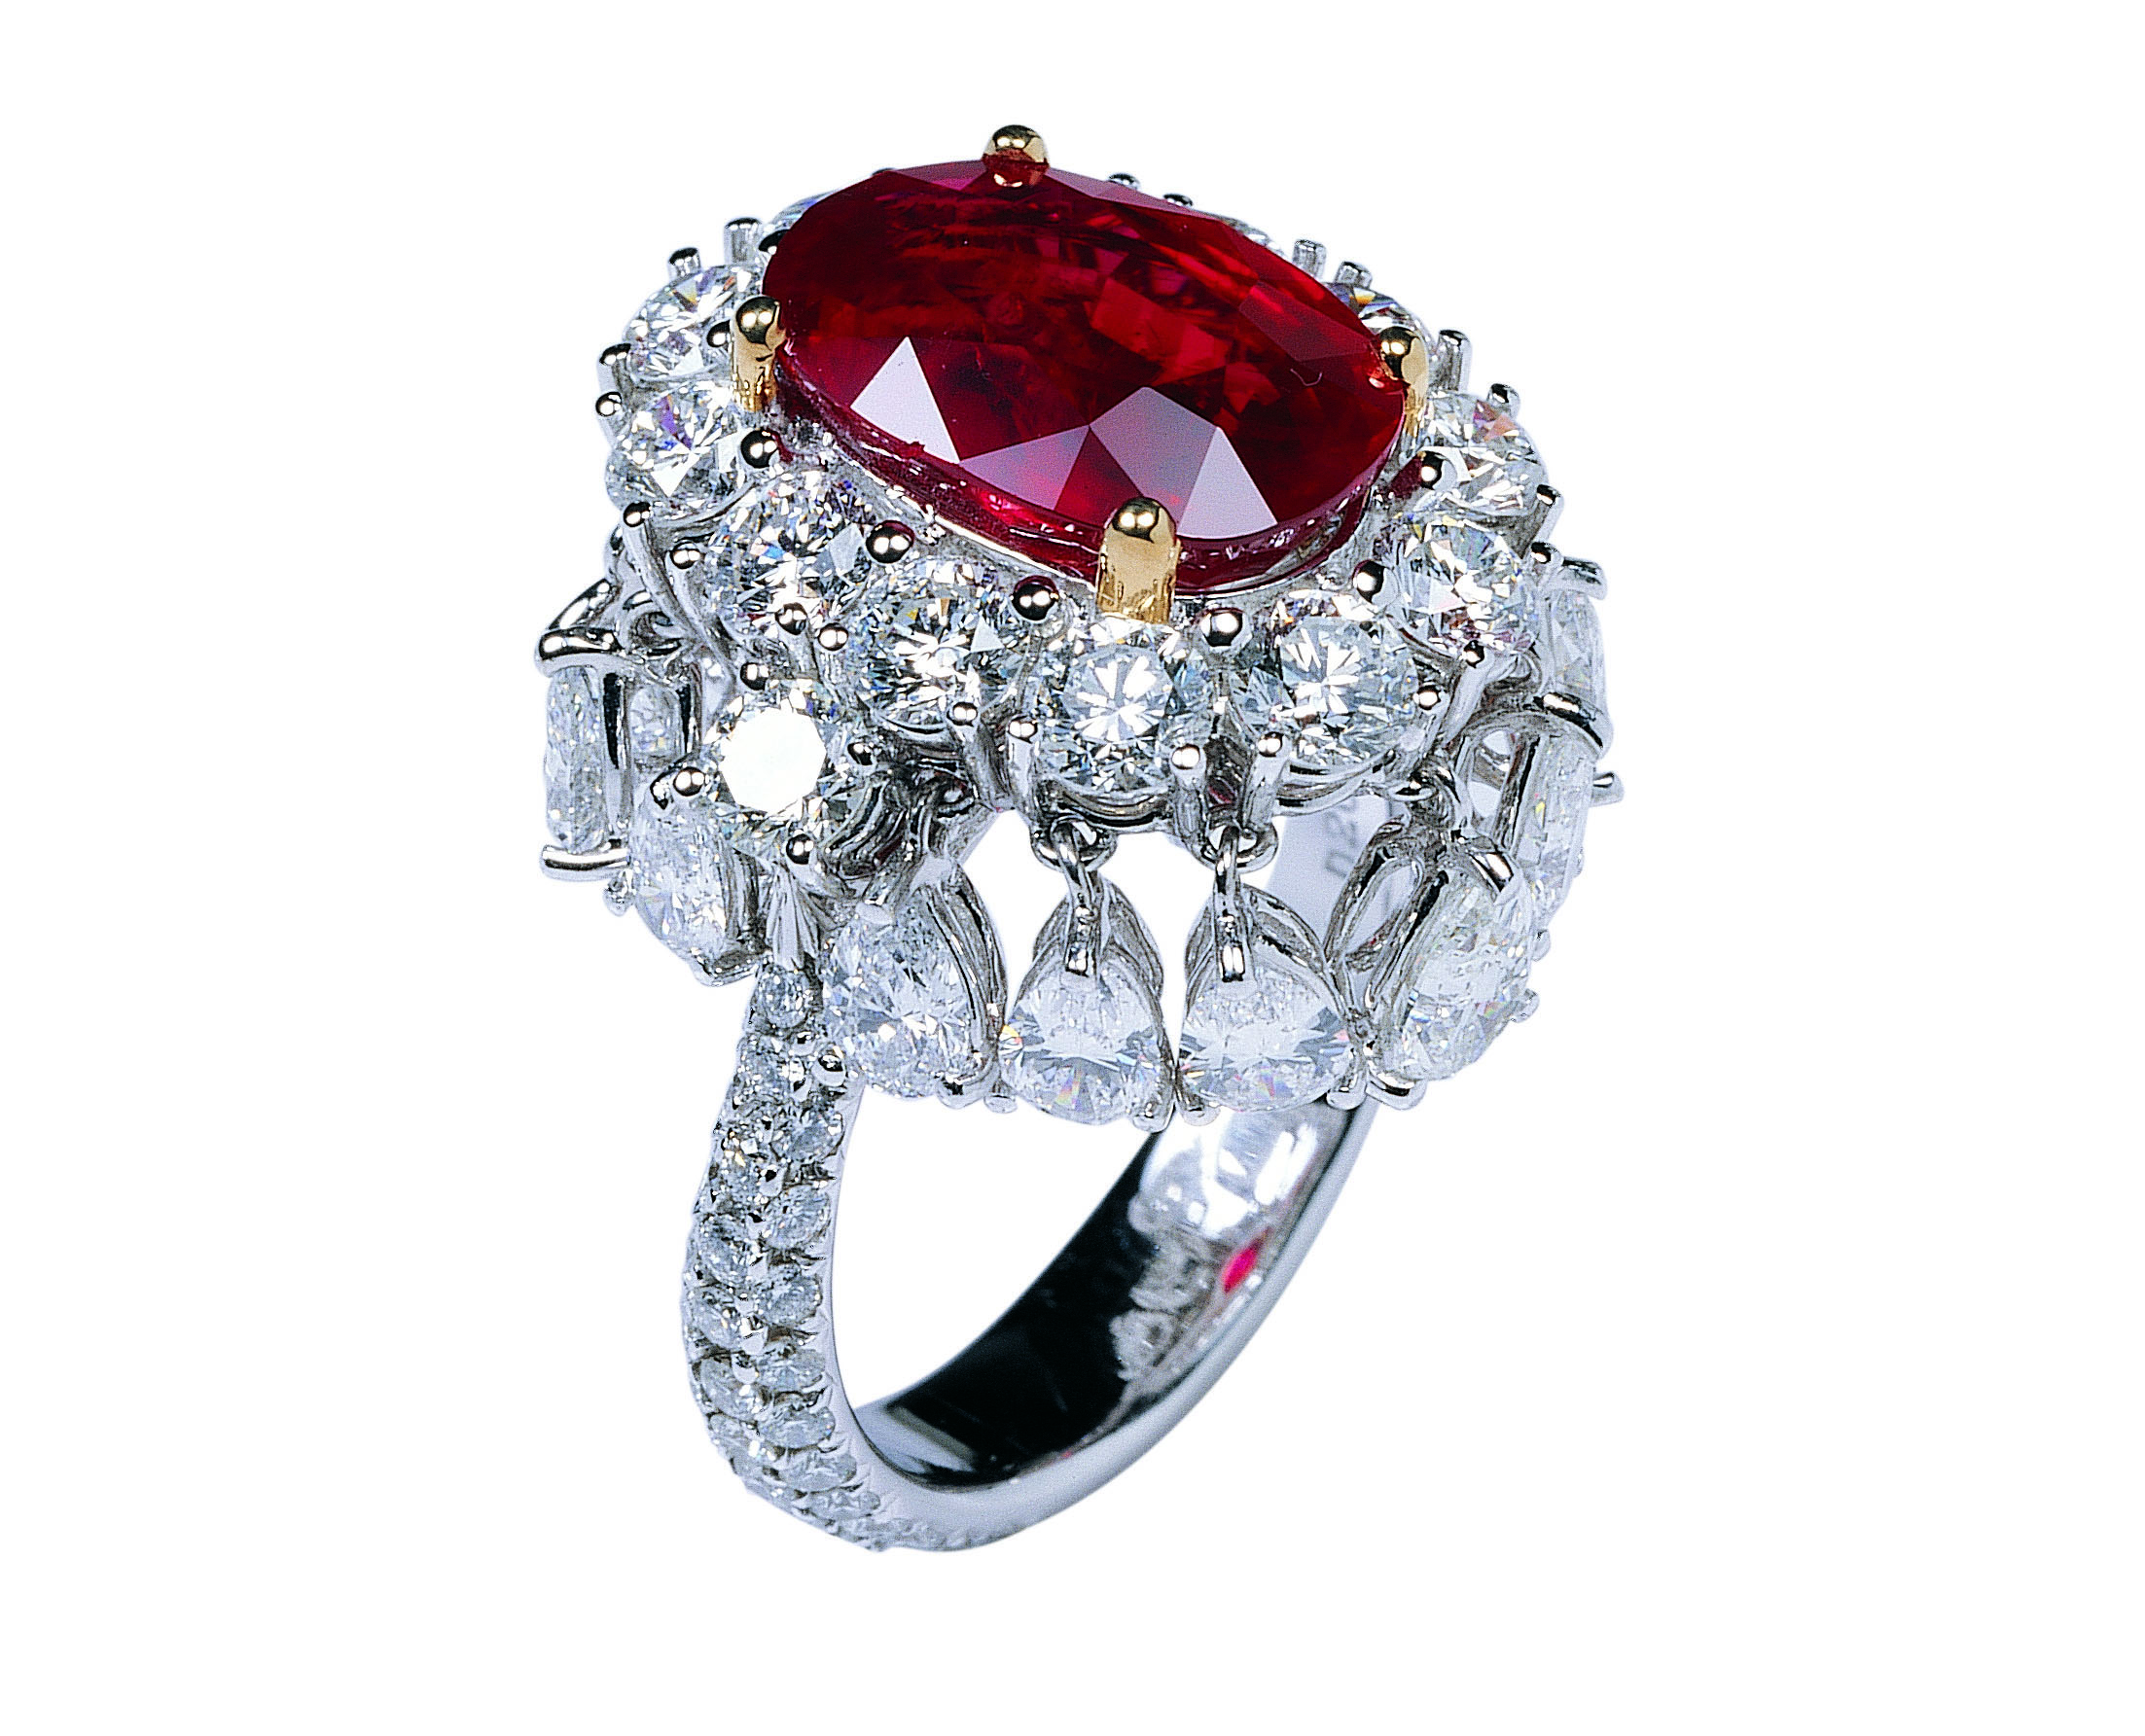 RUBY & DIAMOND DANCING RING BESPOKE FINE JEWELLERY BY SHAHINA HATTA